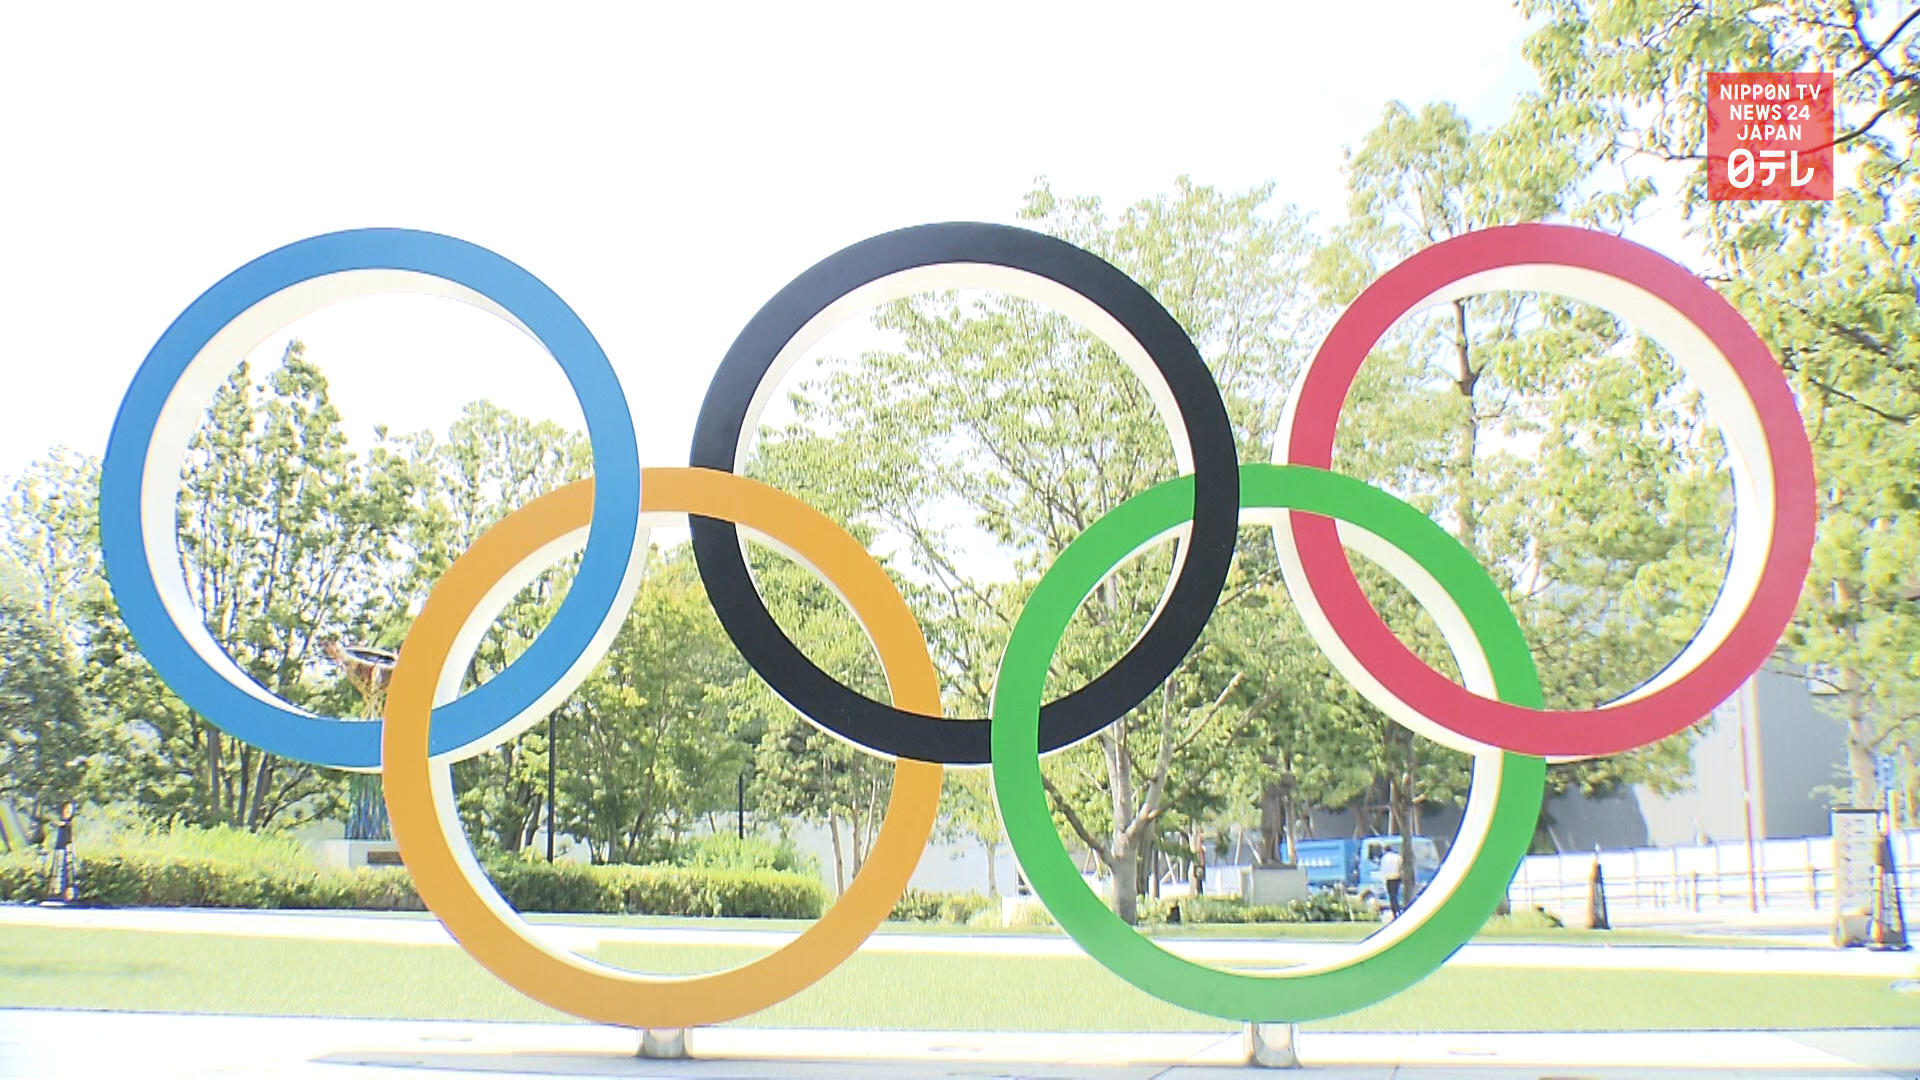 Tokyo Games to be simplified in 50-60 areas